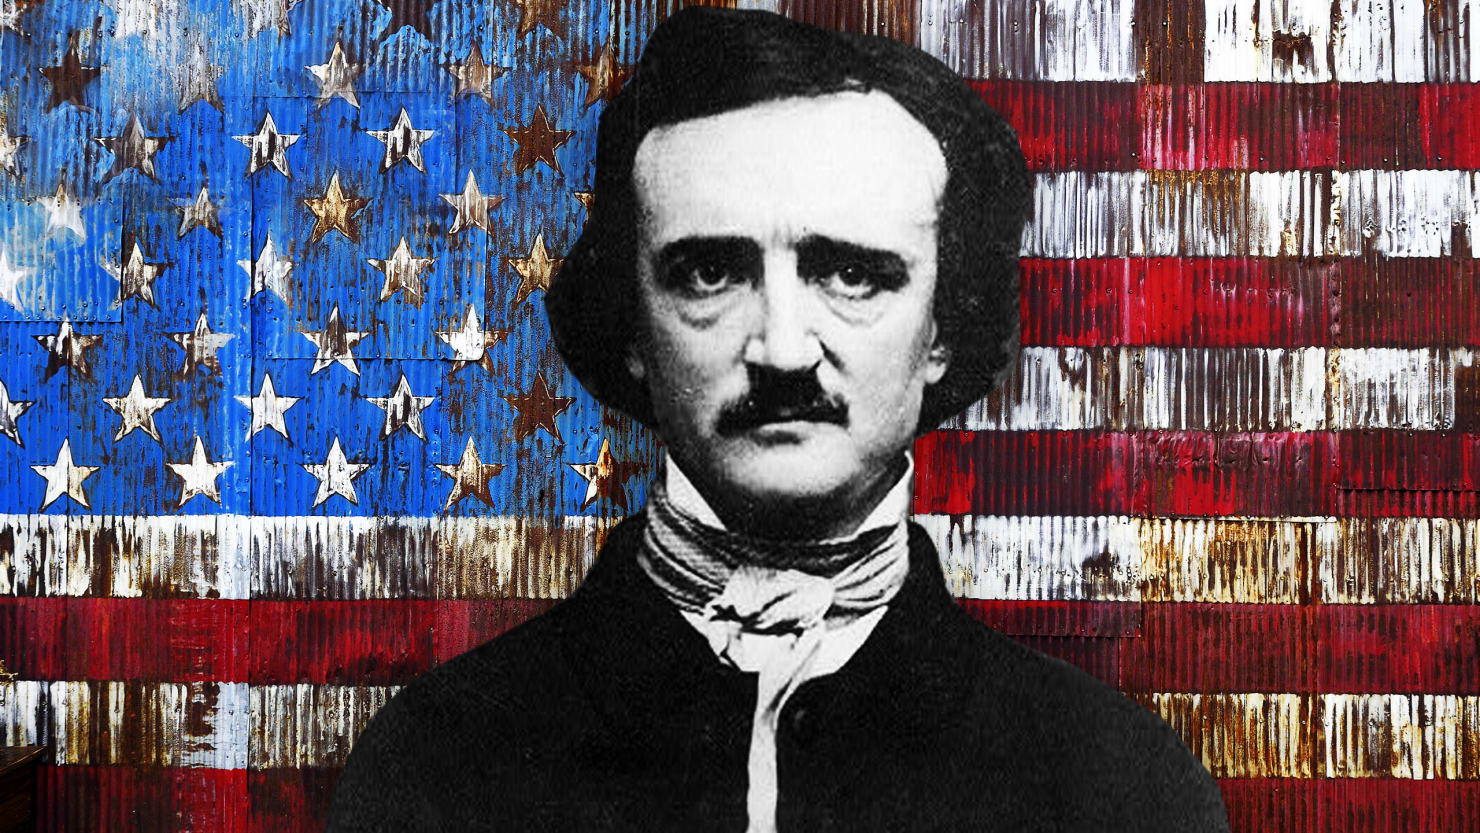 How Edgar Allen Poe Got Kicked Out of the U.S. Army